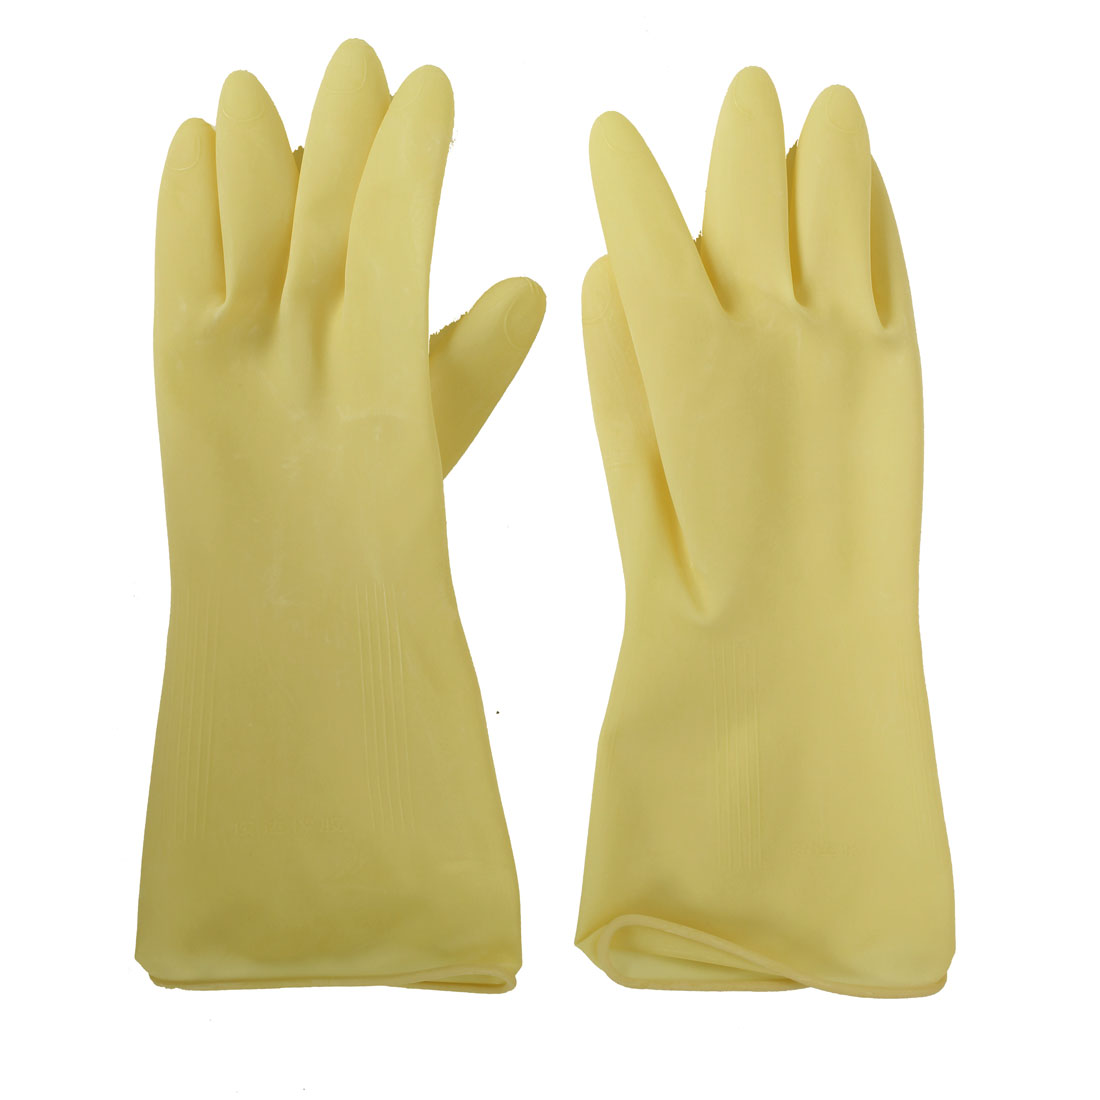 Factory Oil Resistant Waterproof Hand Protector Rubber Coated Gloves Beige Pair